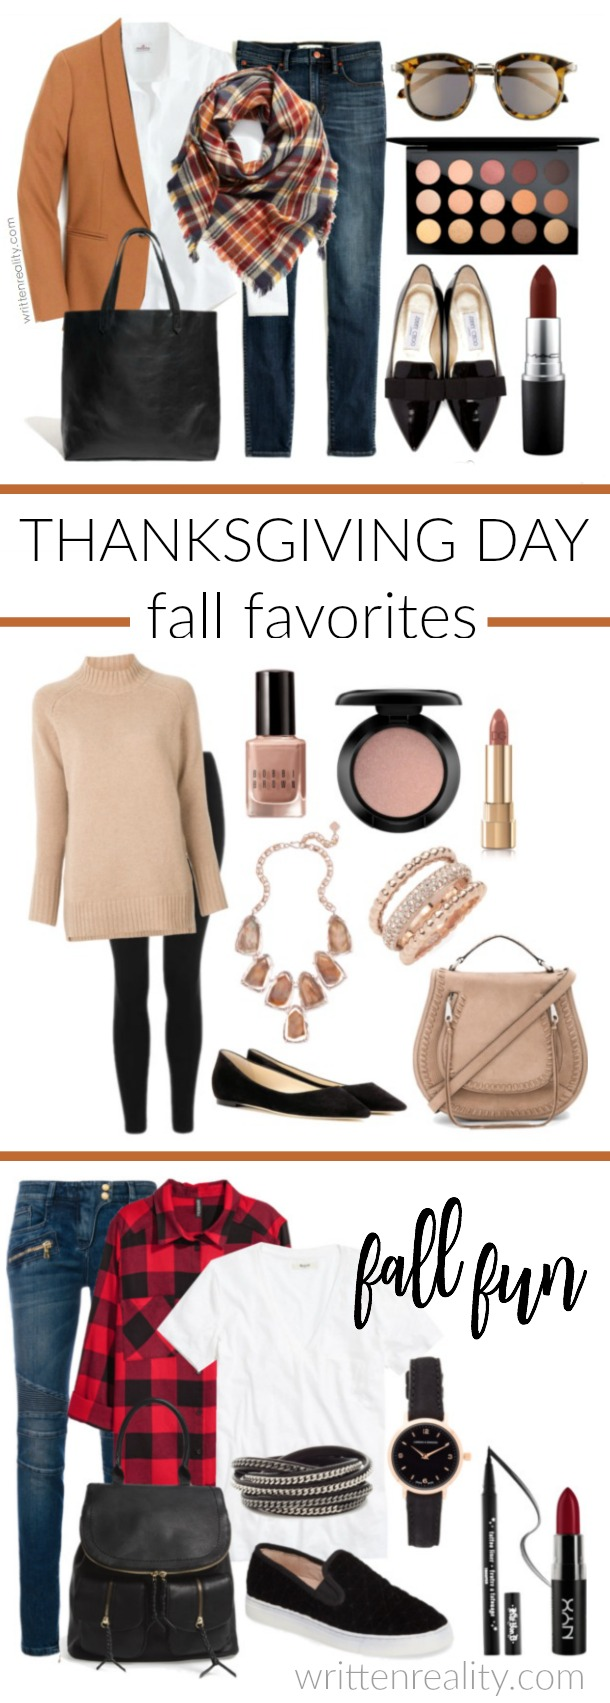 thanksgiving day outfit ideas